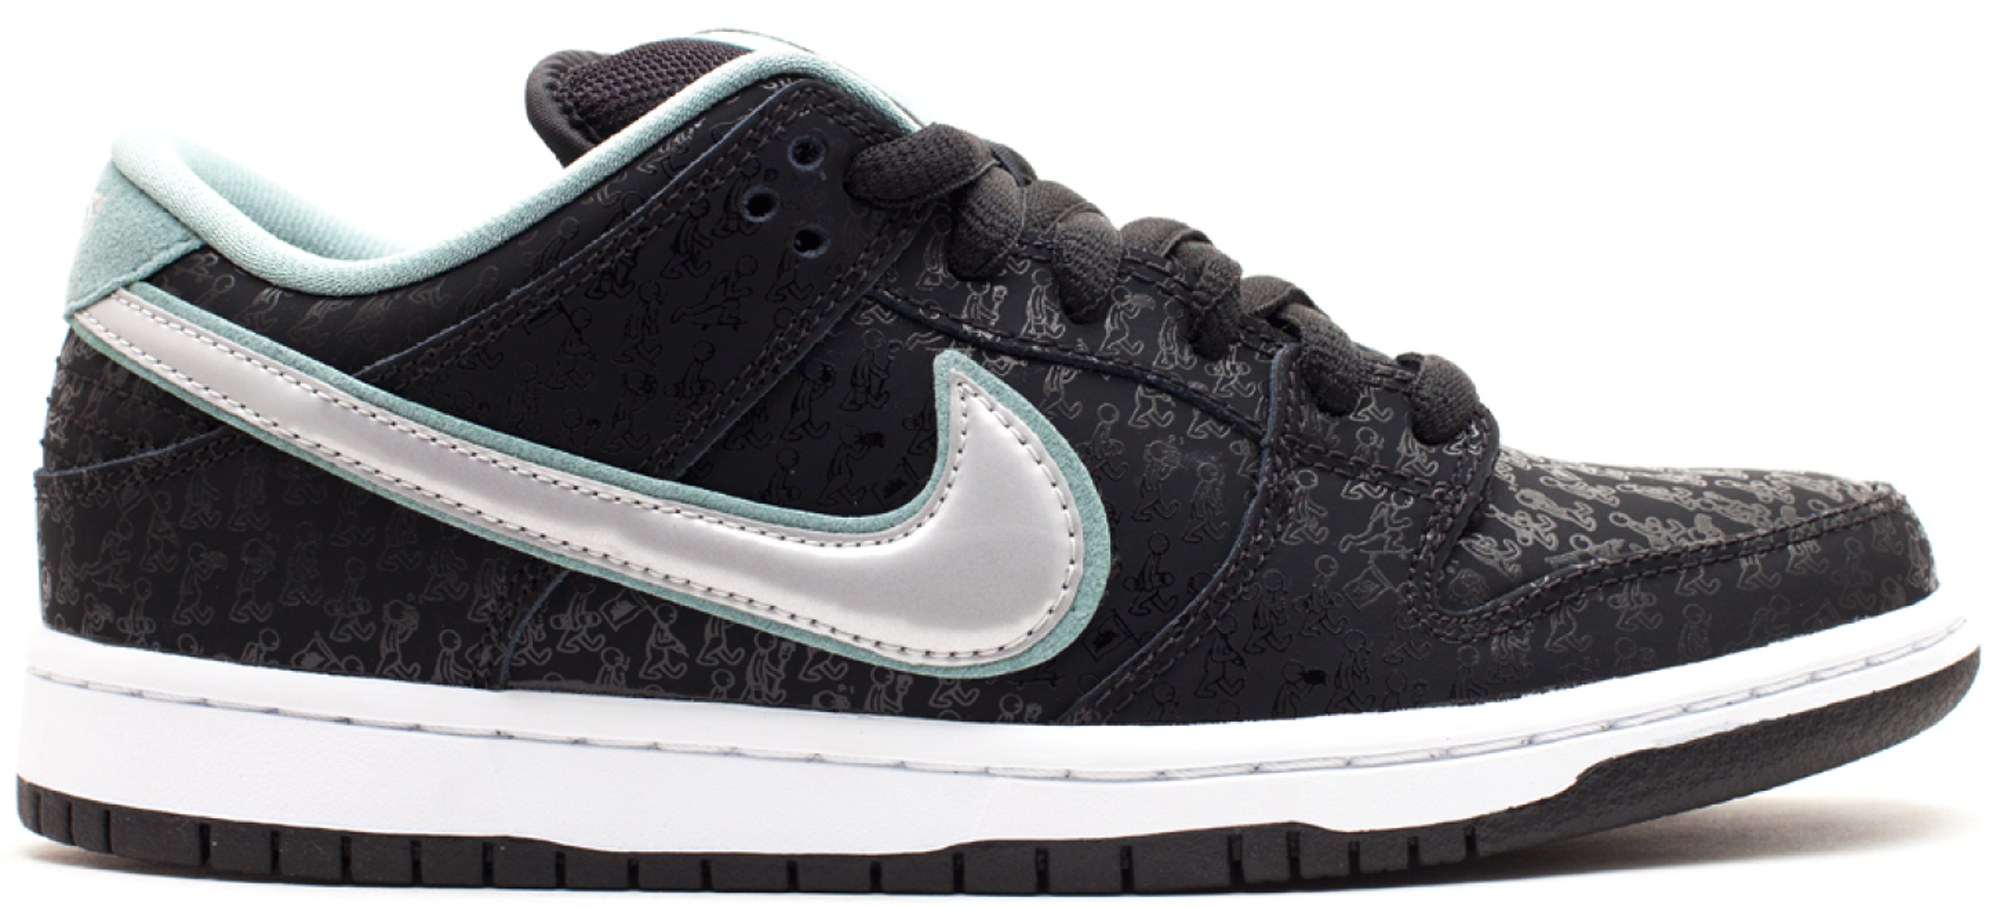 Dunk Low SB SPOT x Lance Mountain (Special Box)